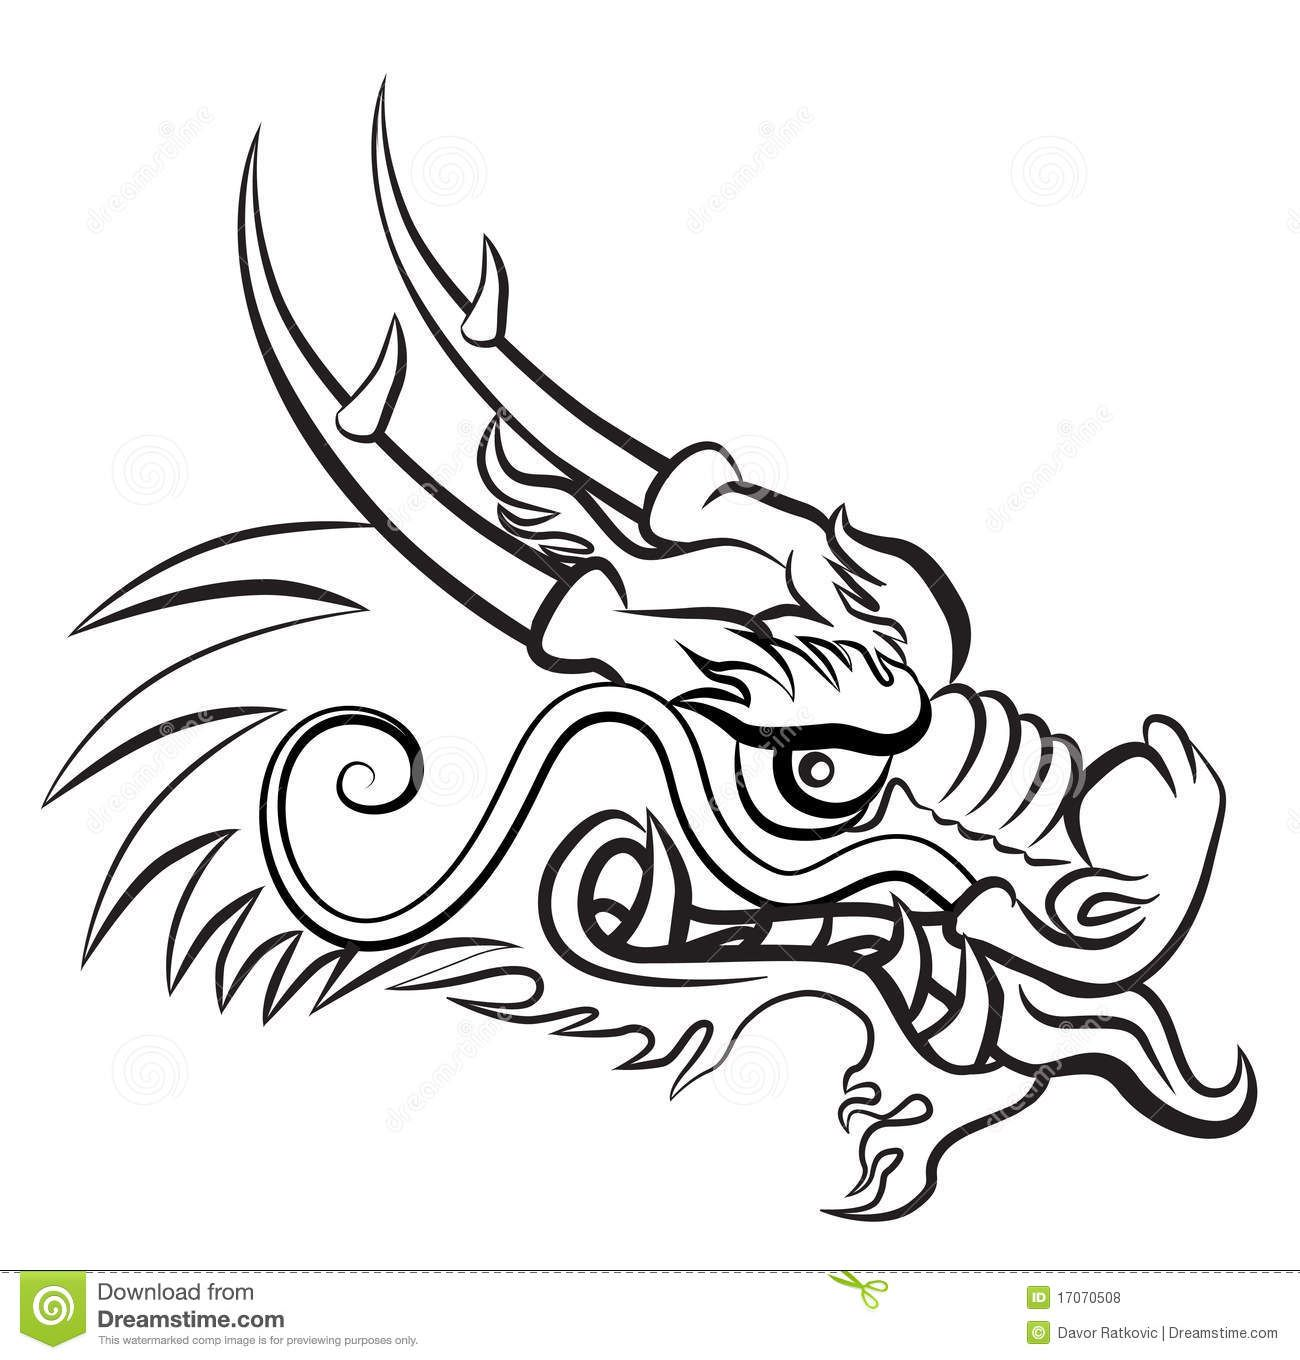 chinese dragon drawing easy - photo #15